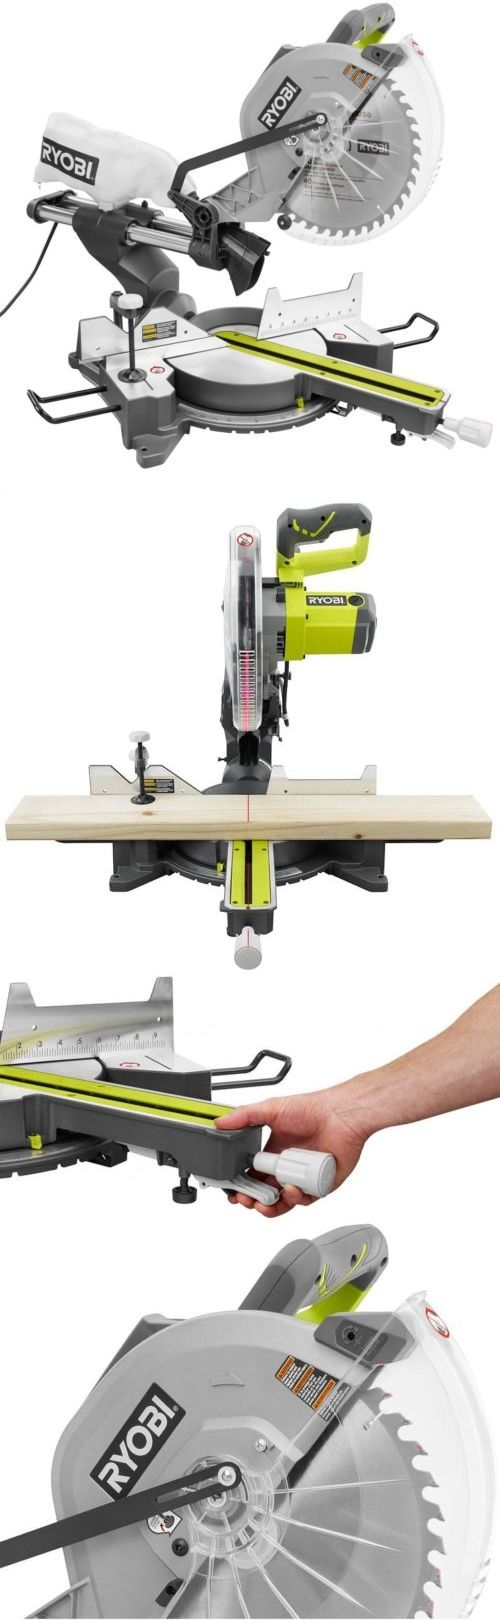 Miter and Chop Saws 20787: Ryobi Sliding Miter Saw 12 In. Adjustable Laser Heavy Duty 15 Amp Motor -> BUY IT NOW ONLY: $286.35 on eBay!